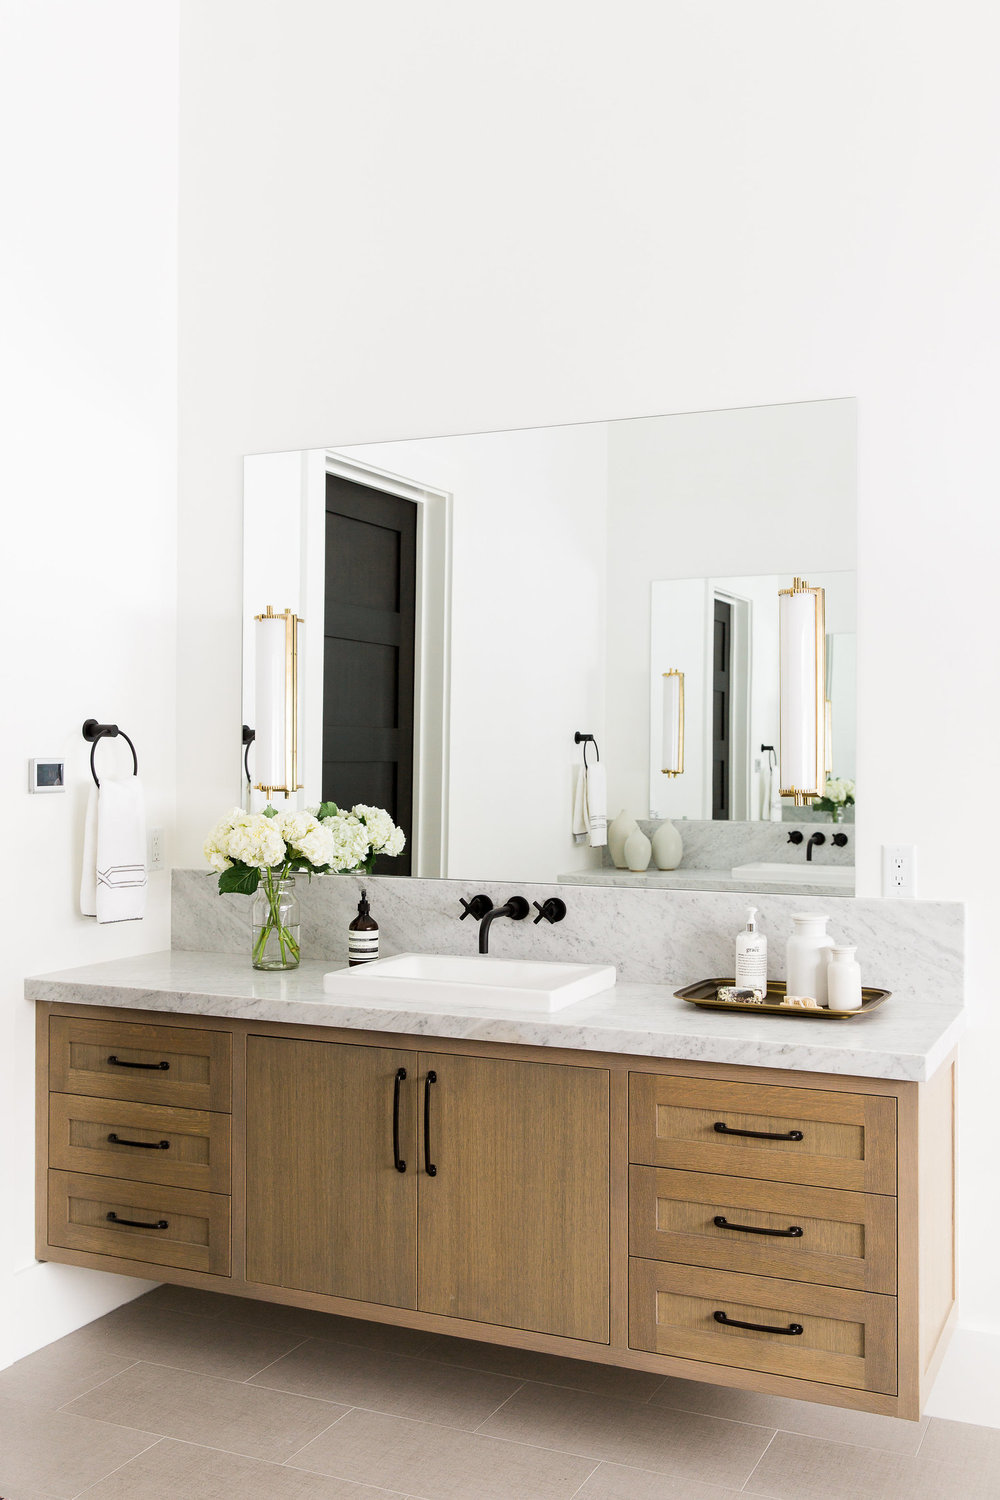 Wooden bathroom vanity with white countertop